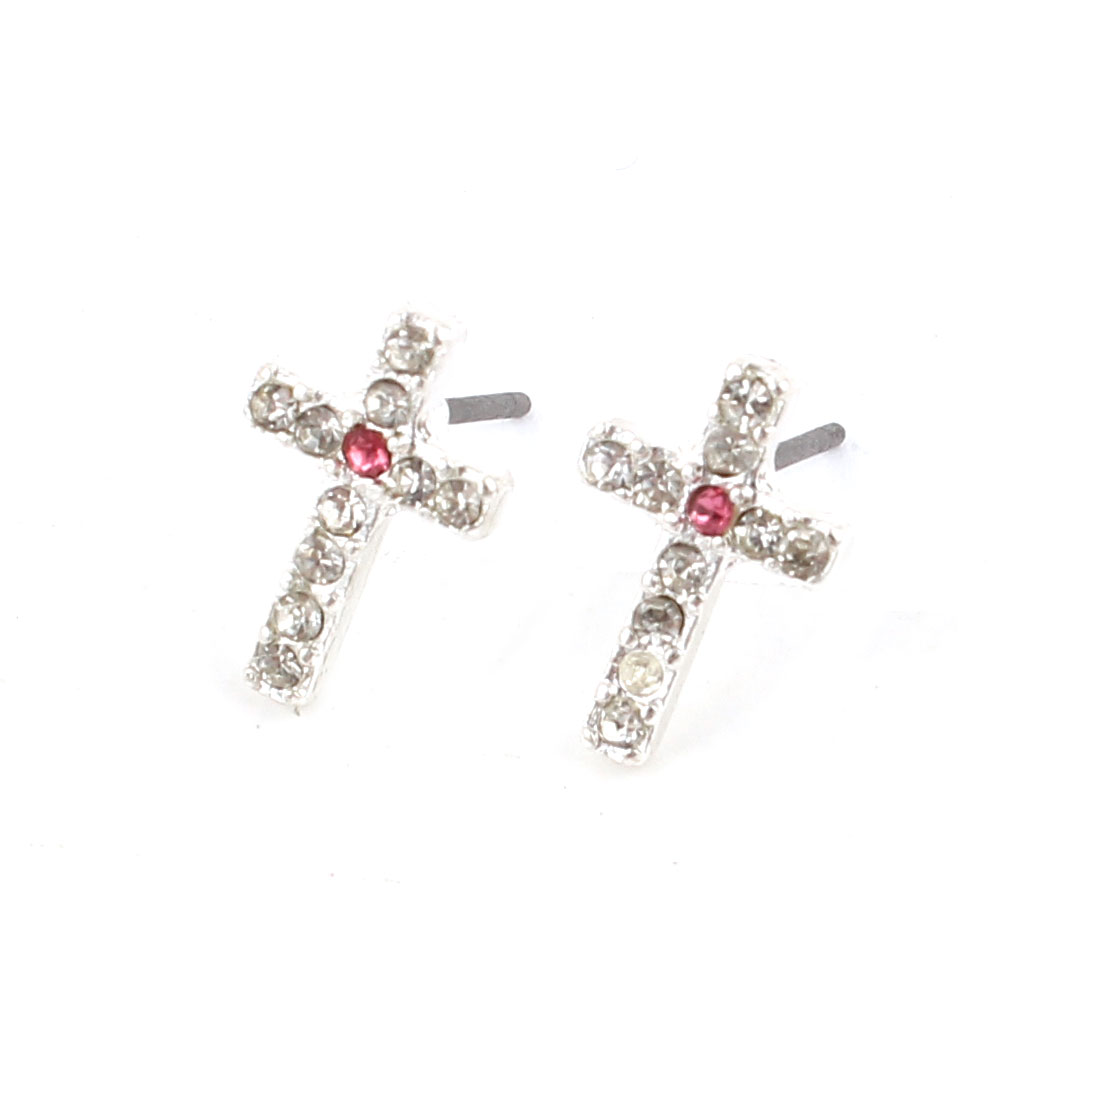 Lady Rhinestone Inlaid Pink Cross Ear Pins Earbob Stud Earrings Pair